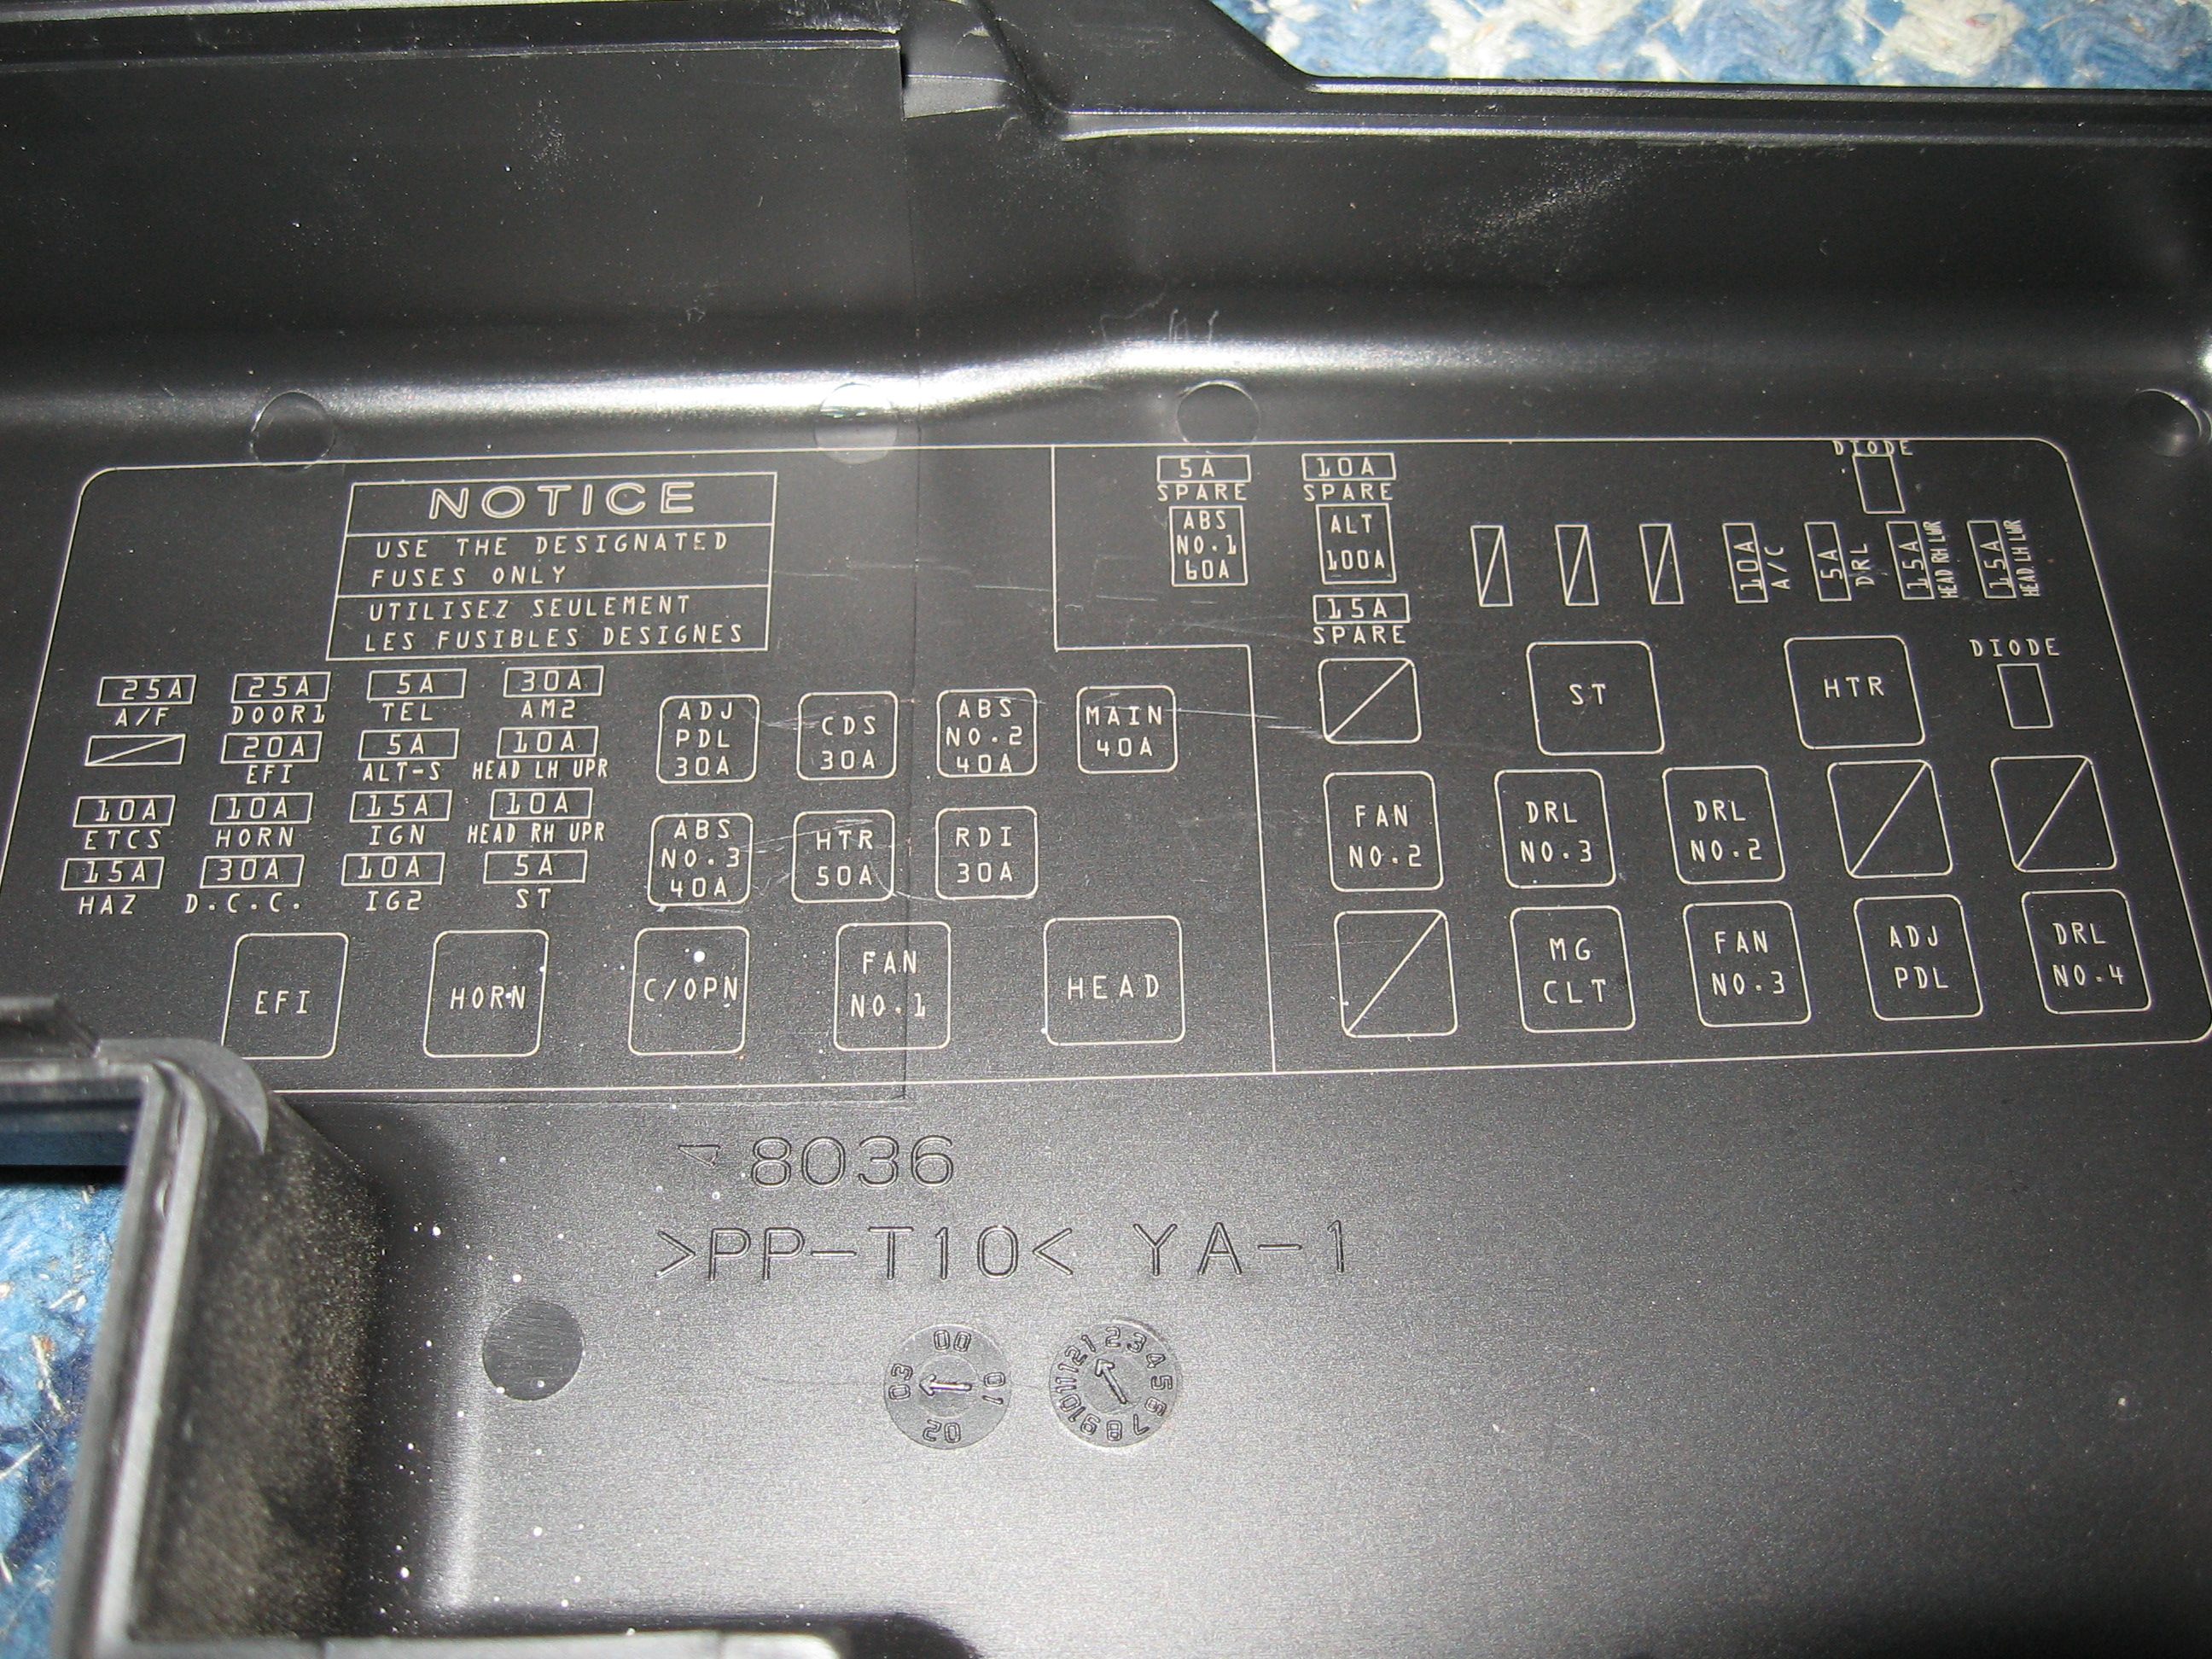 03 Sienna Fuse Box Great Design Of Wiring Diagram Toyota 2004 Get Free Image About Supply Air Graphics